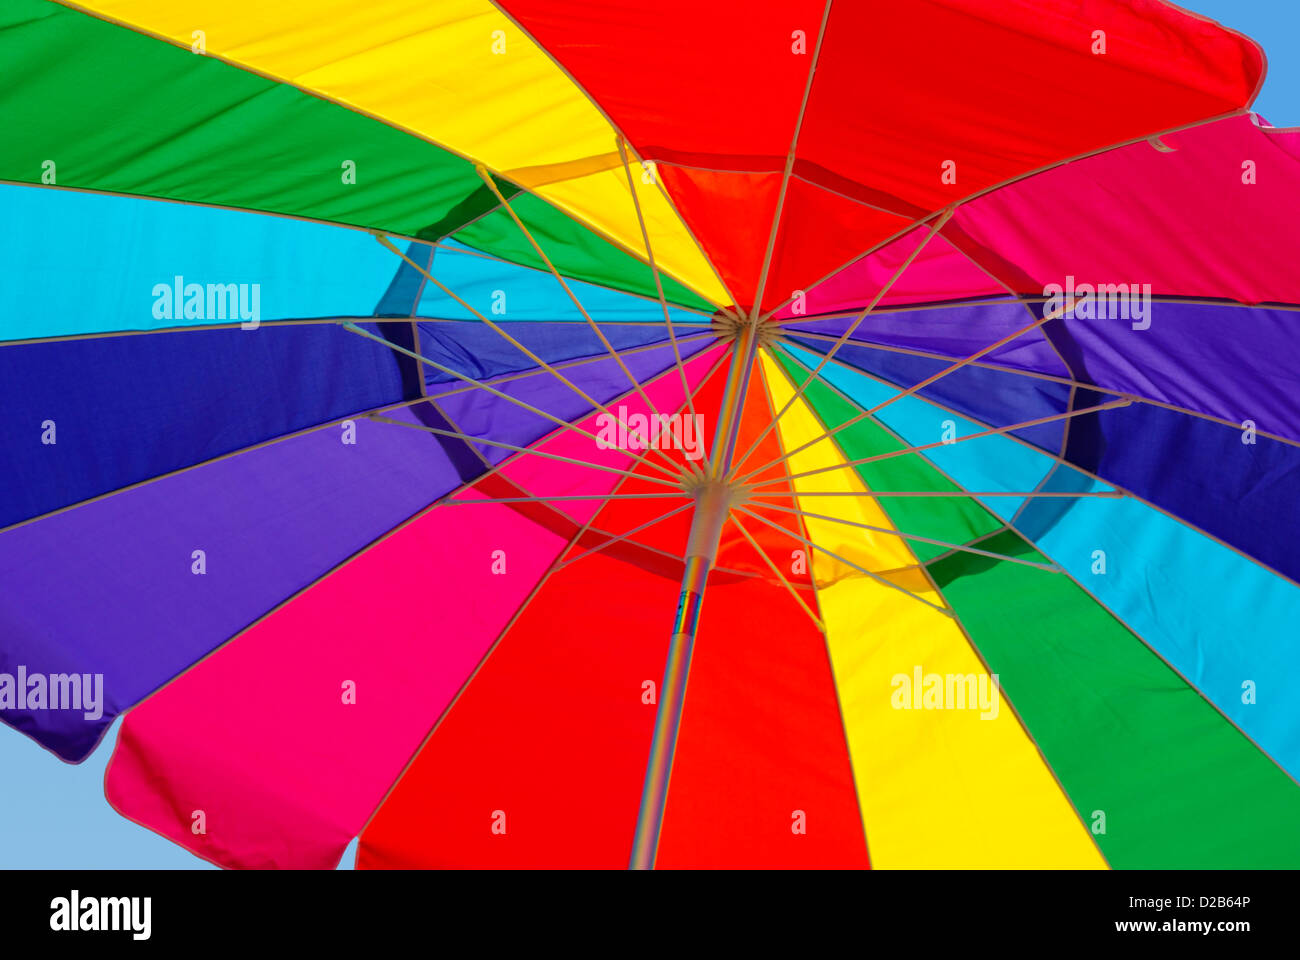 Close-up view from under a bright rainbow colored umbrella Stock Photo